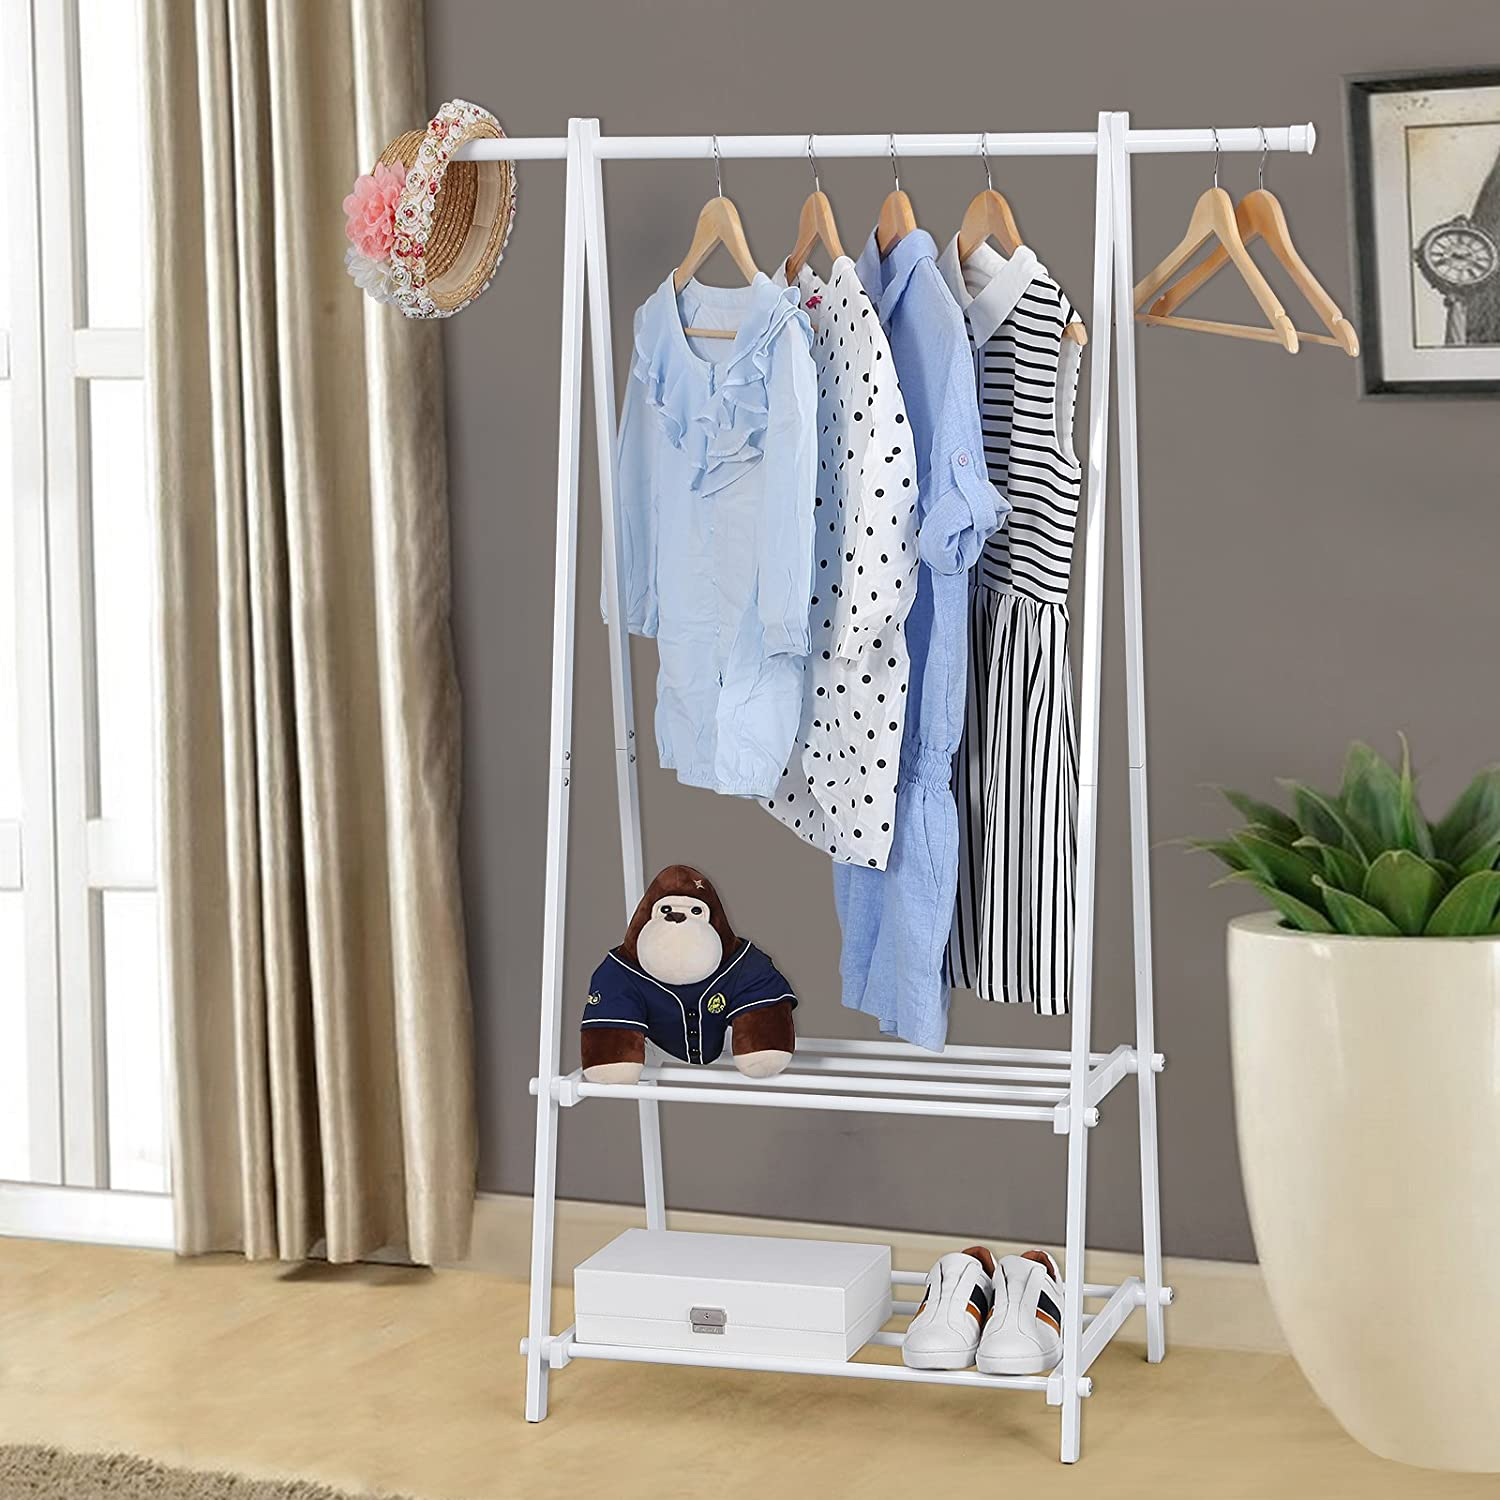 hanging hanger pin closet portable rack drying garment clothes